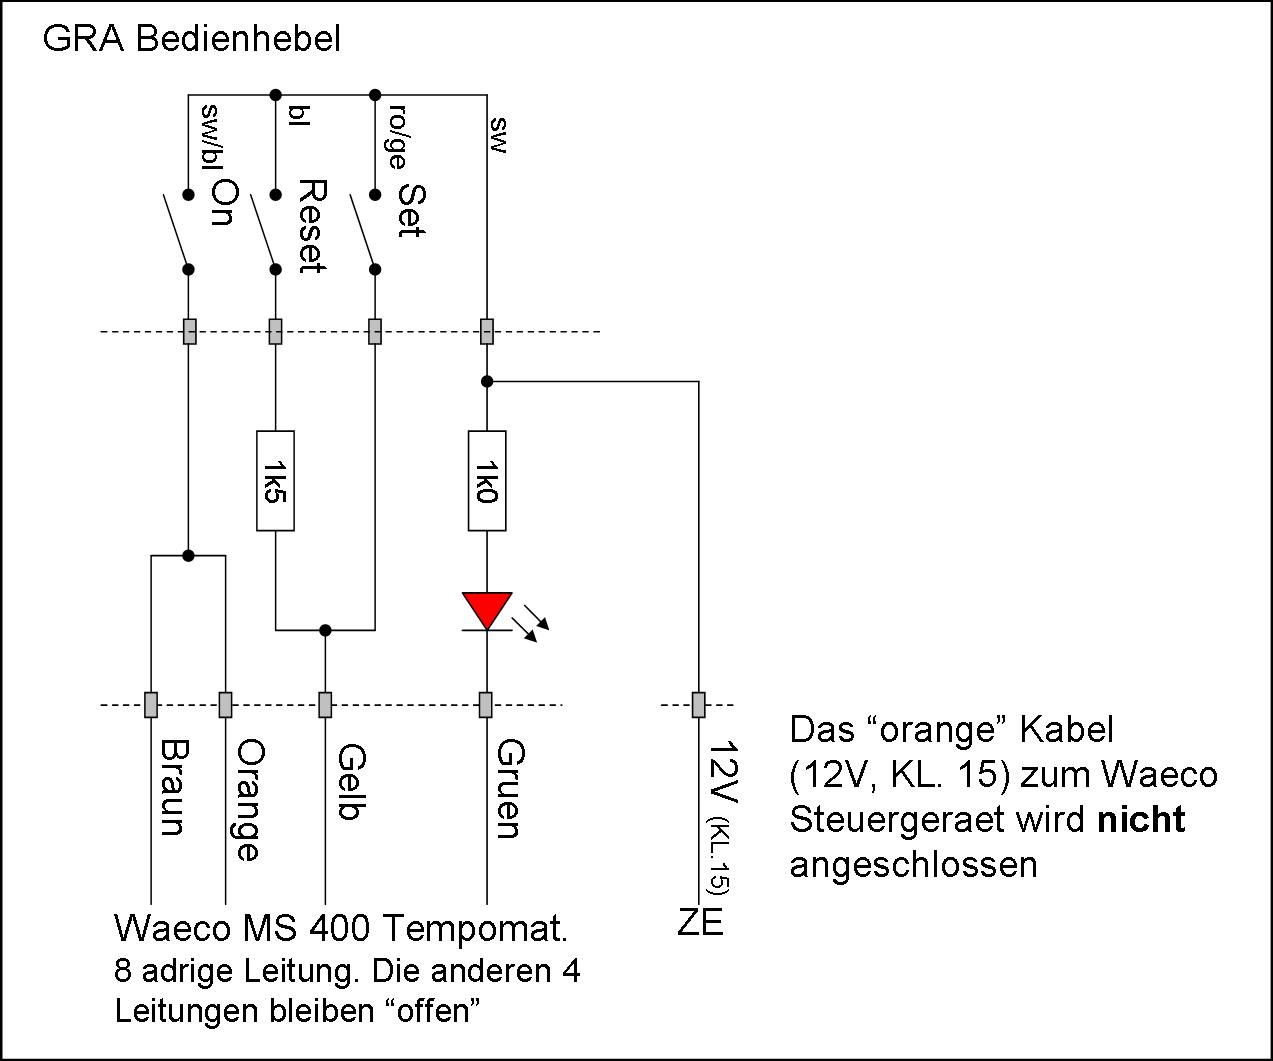 Aftermarket Cruisecontrol Cc Braun Wiring Diagram Translation Braunbrown Gelbyellow Gruengreen Note The Orange Wire From Waeco Control Box Is Not To Be Connected Kl15 As Shown In